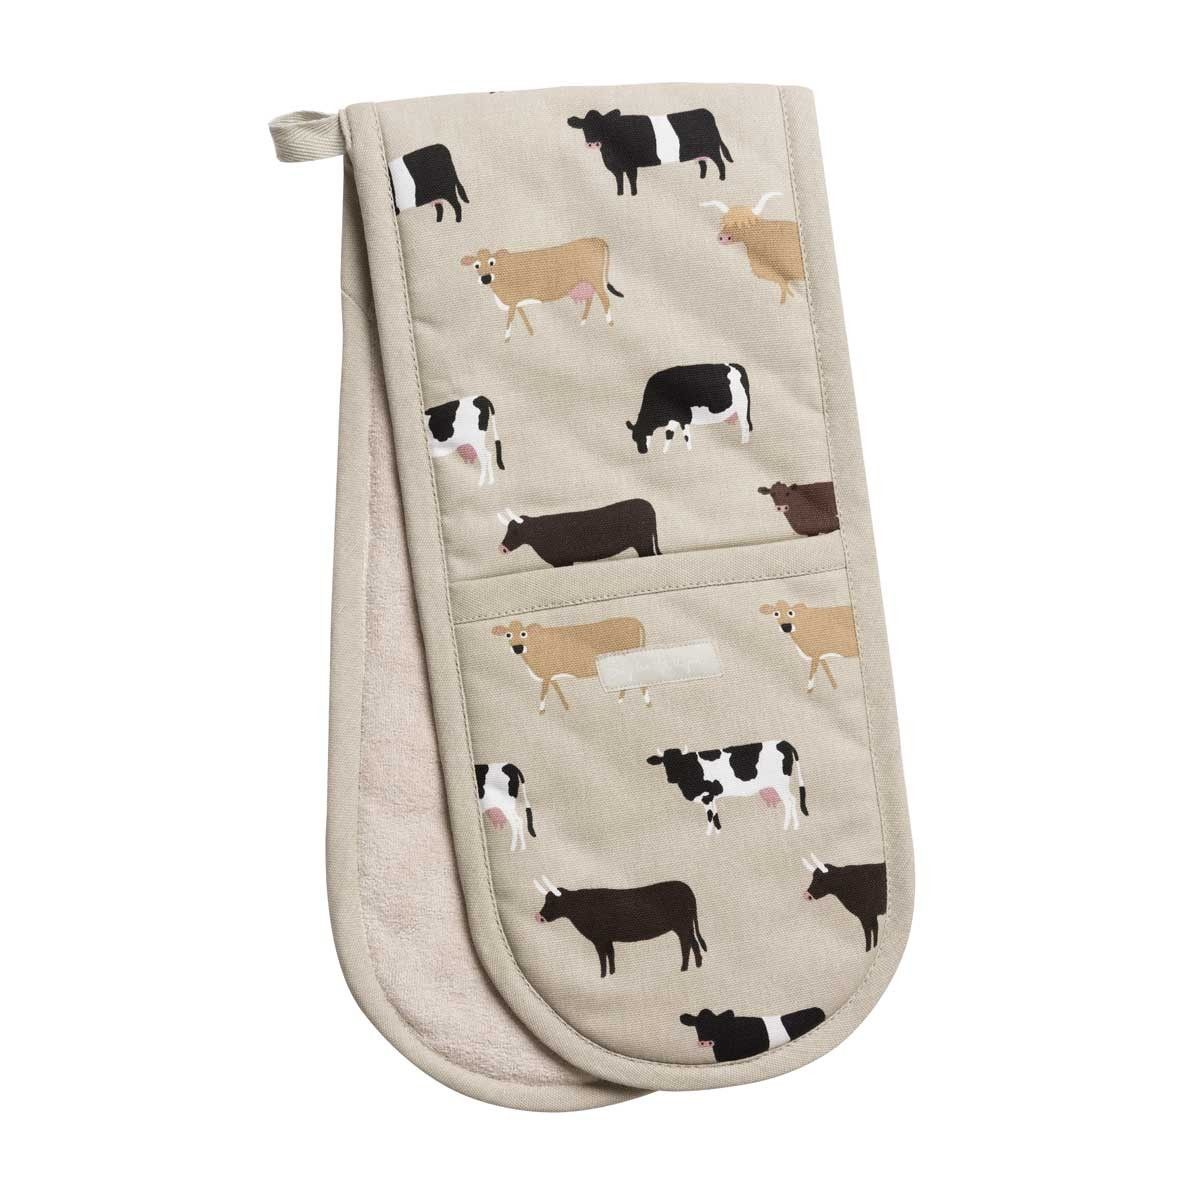 Cows Double Oven Glove Oven Glove Double Oven Cow